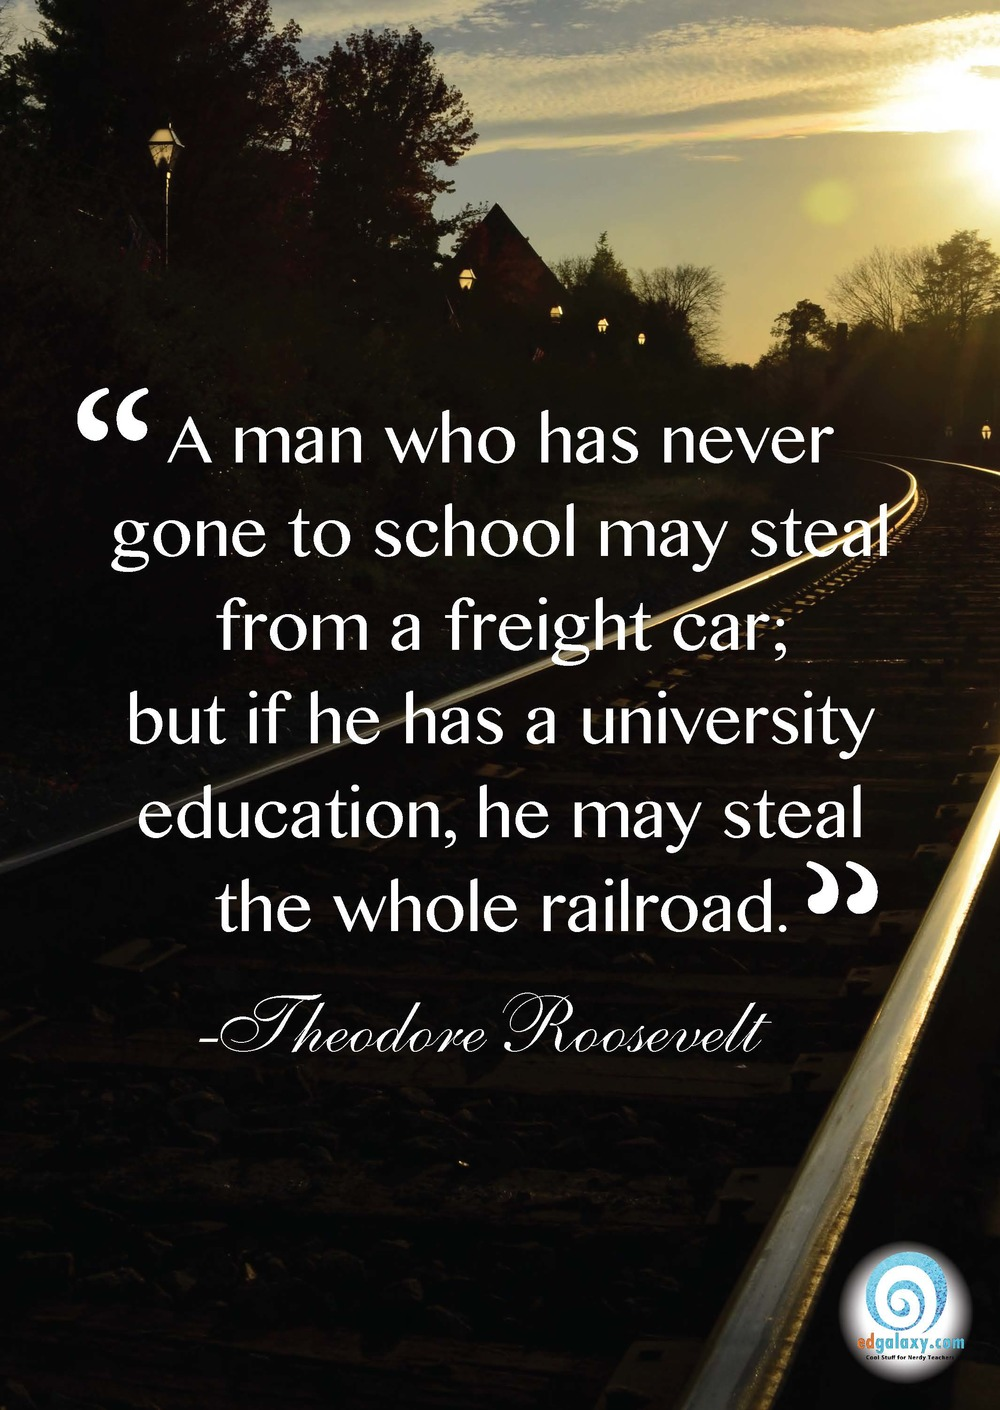 Quotes Quotes Education Quotes  Famous Quotes For Teachers And Students